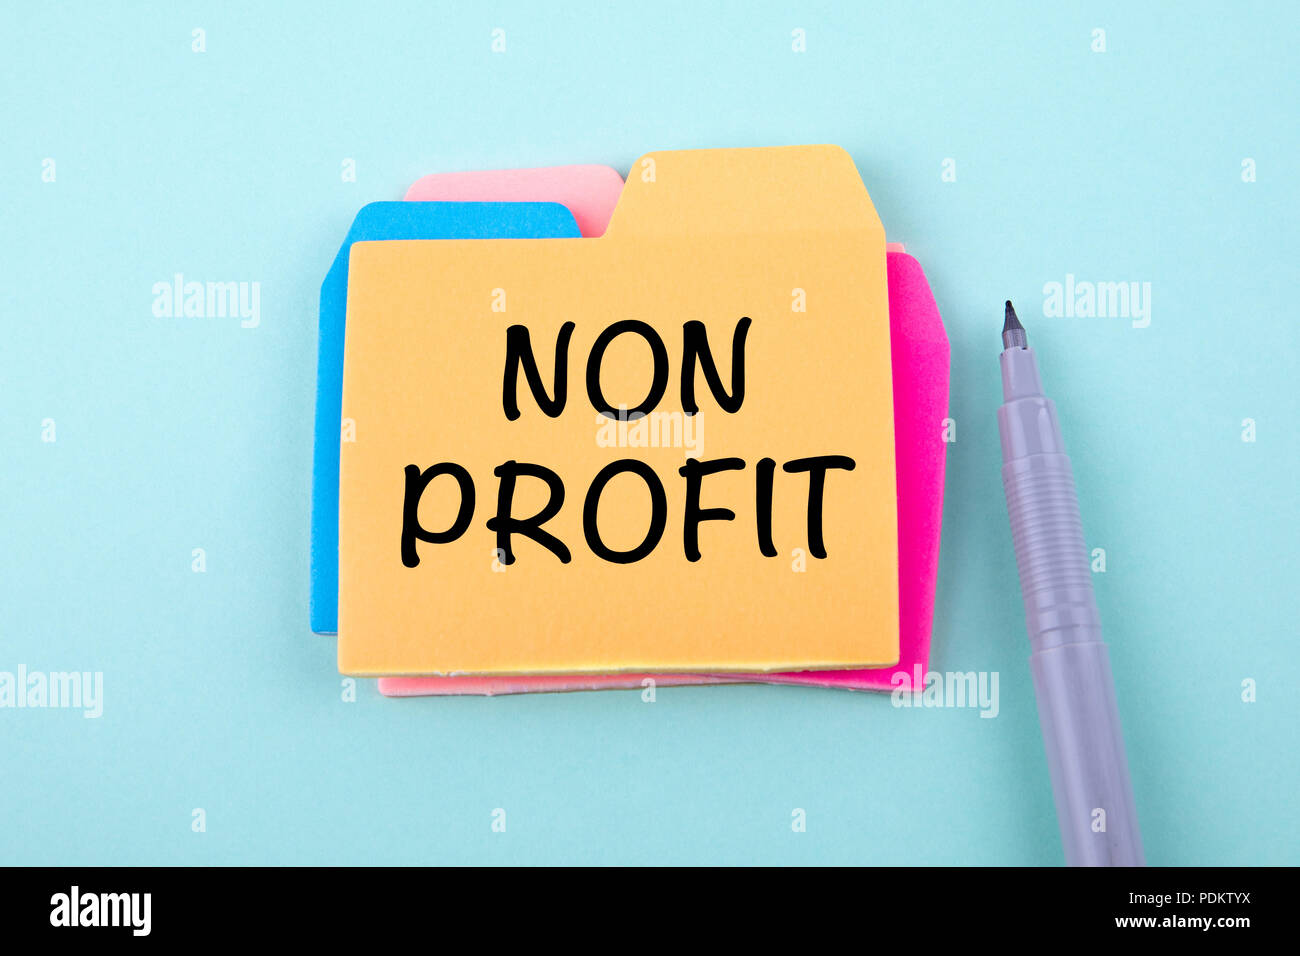 Non Profit, Business Concept - Stock Image